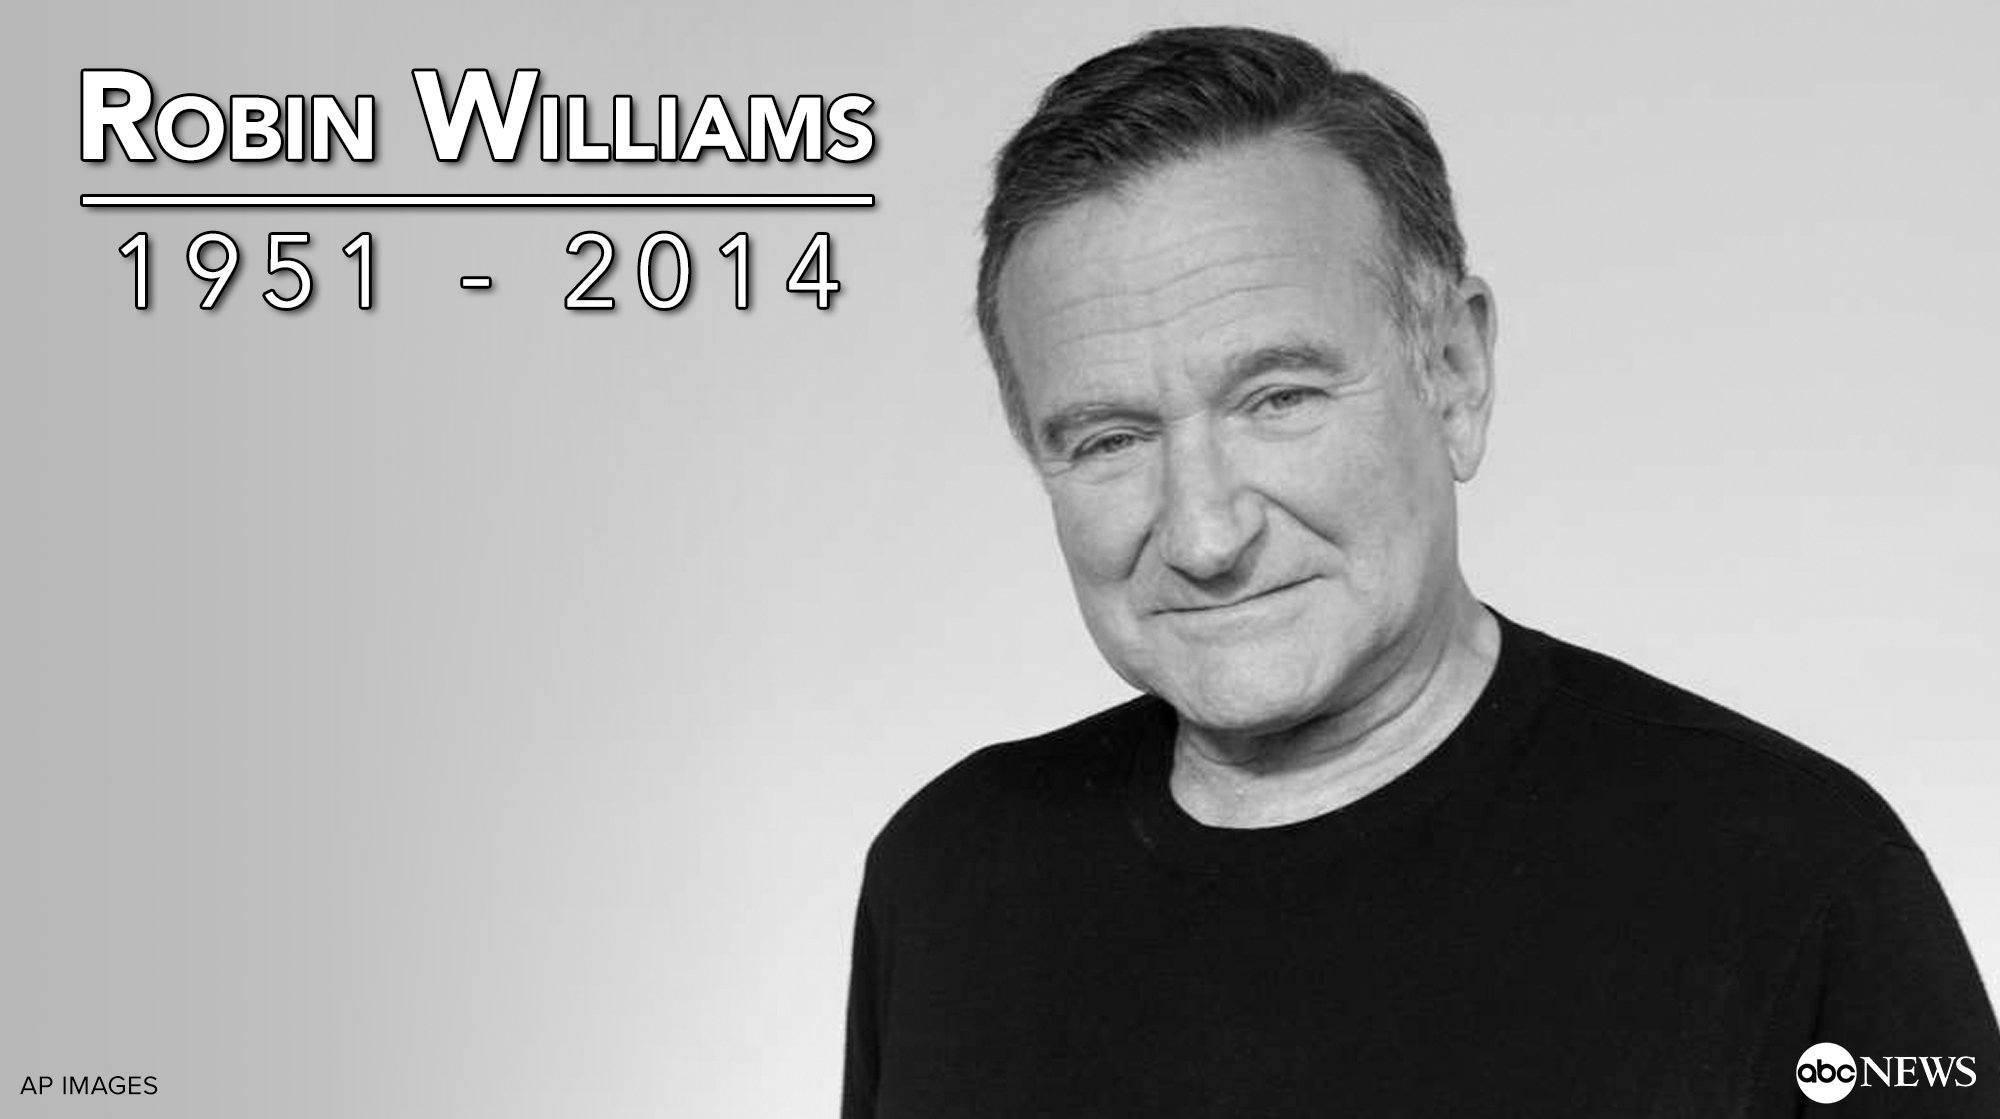 Robin Williams was born on this day in 1951. He would have turned 65 years old today. Rest in peace... https://t.co/cb4J2HaEnv